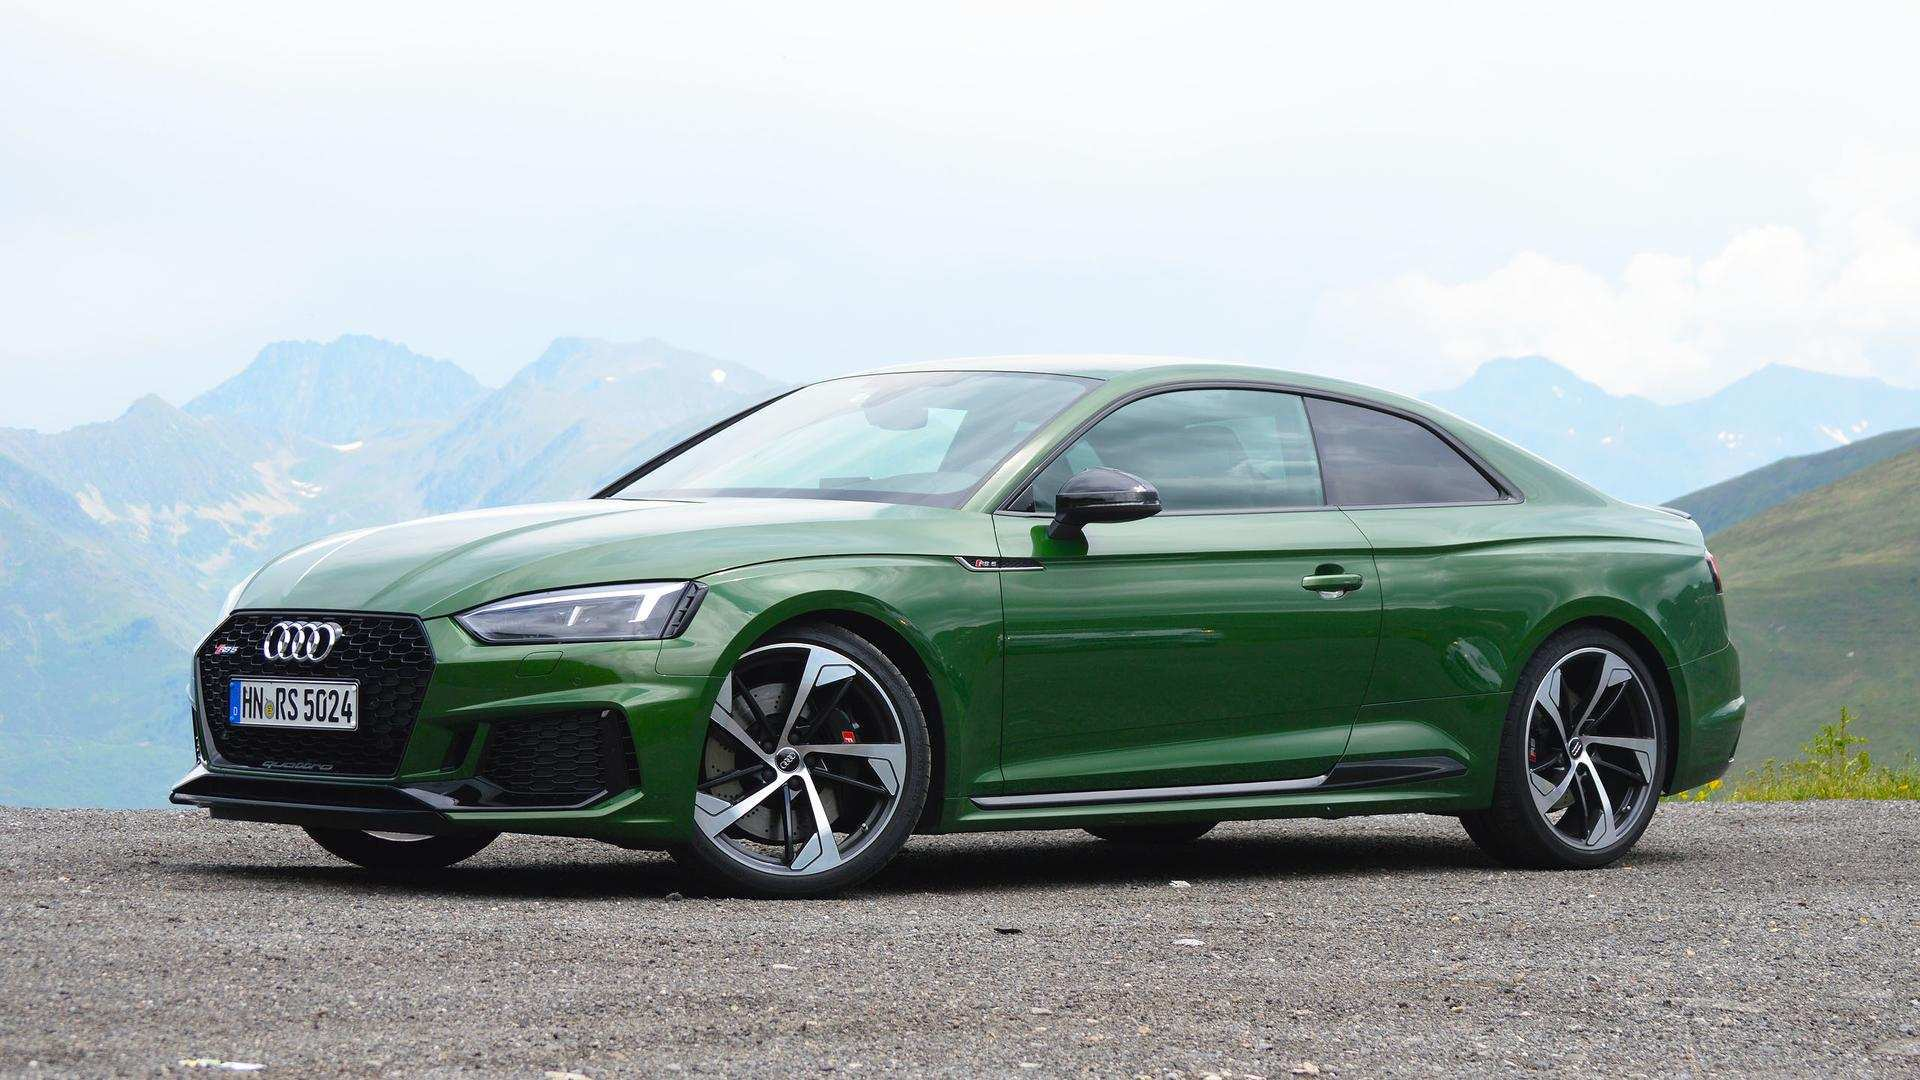 88 All New 2020 Audi Rs5 Release Date And Concept